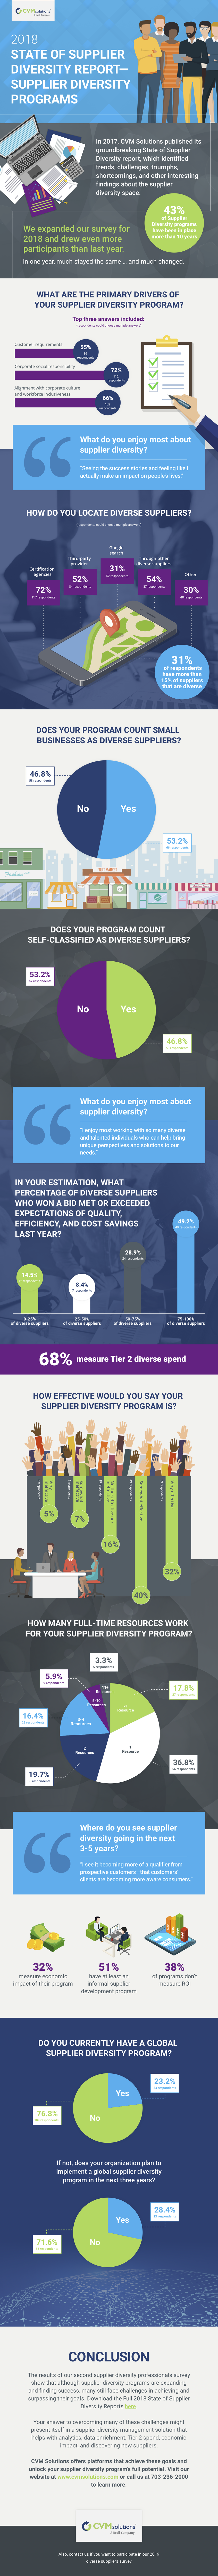 Infographic Supplier Diversity Programs